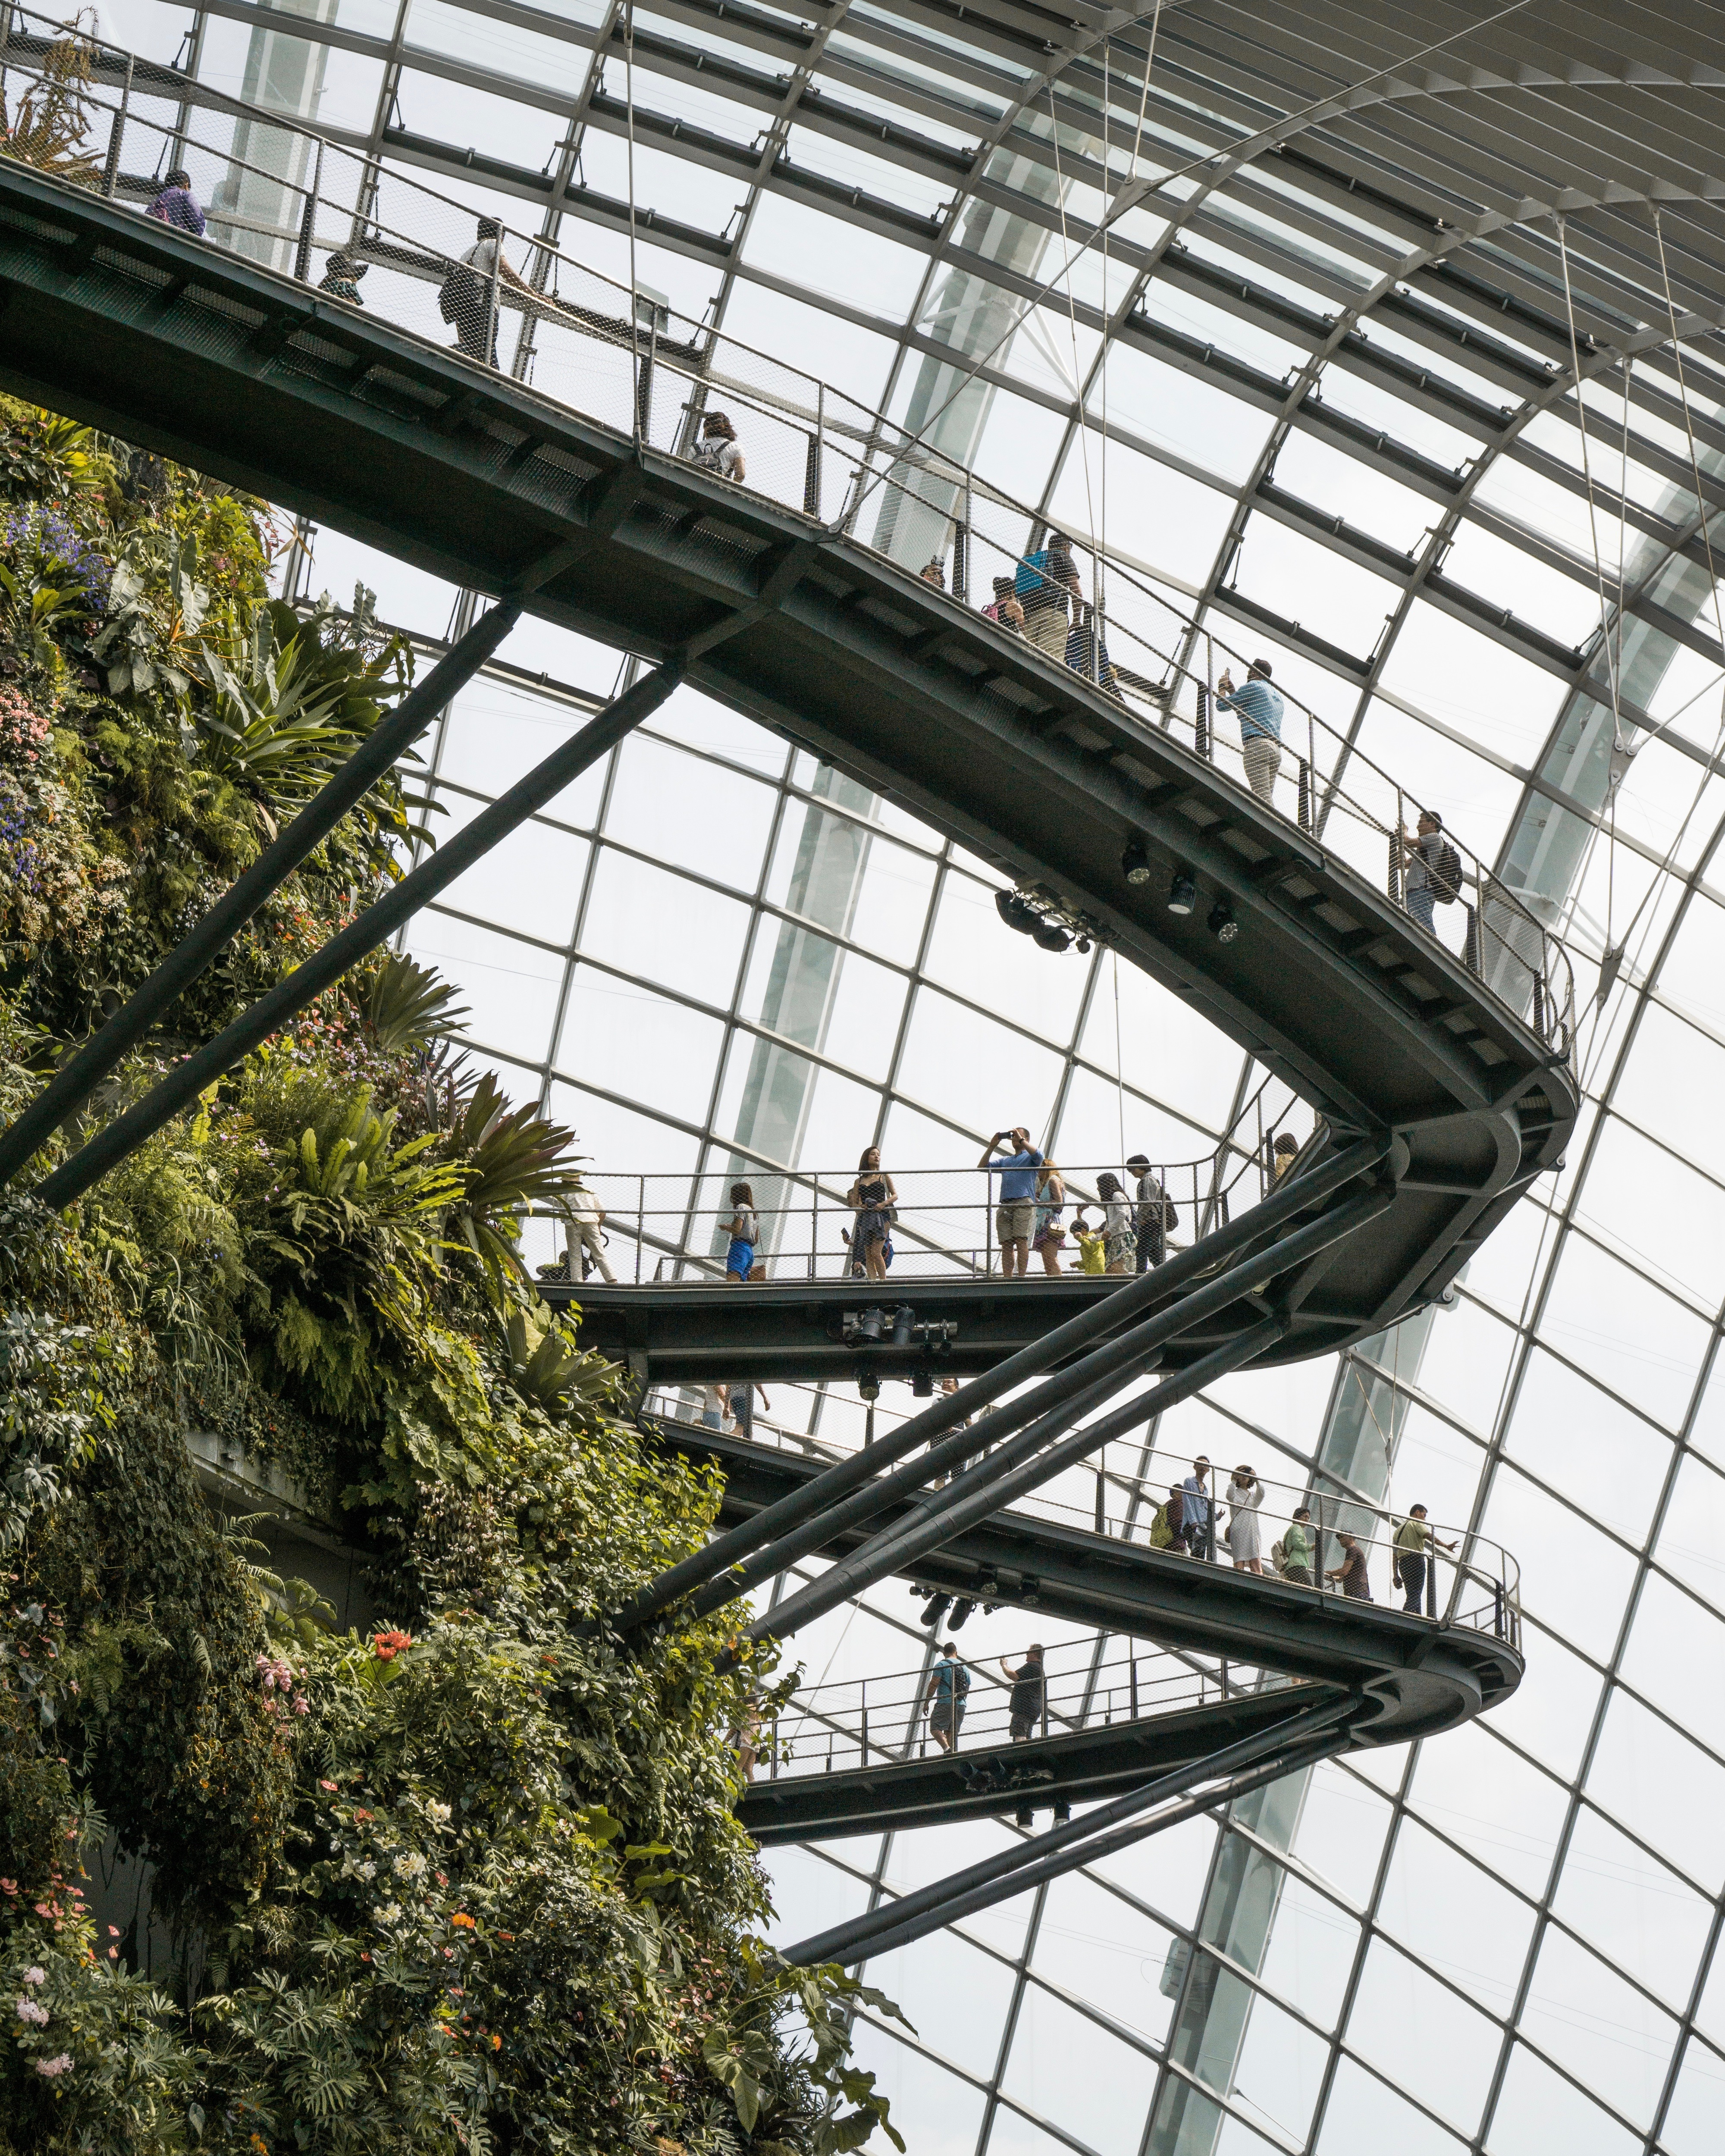 Photo of people standing on skyway beneath glass ceiling in building